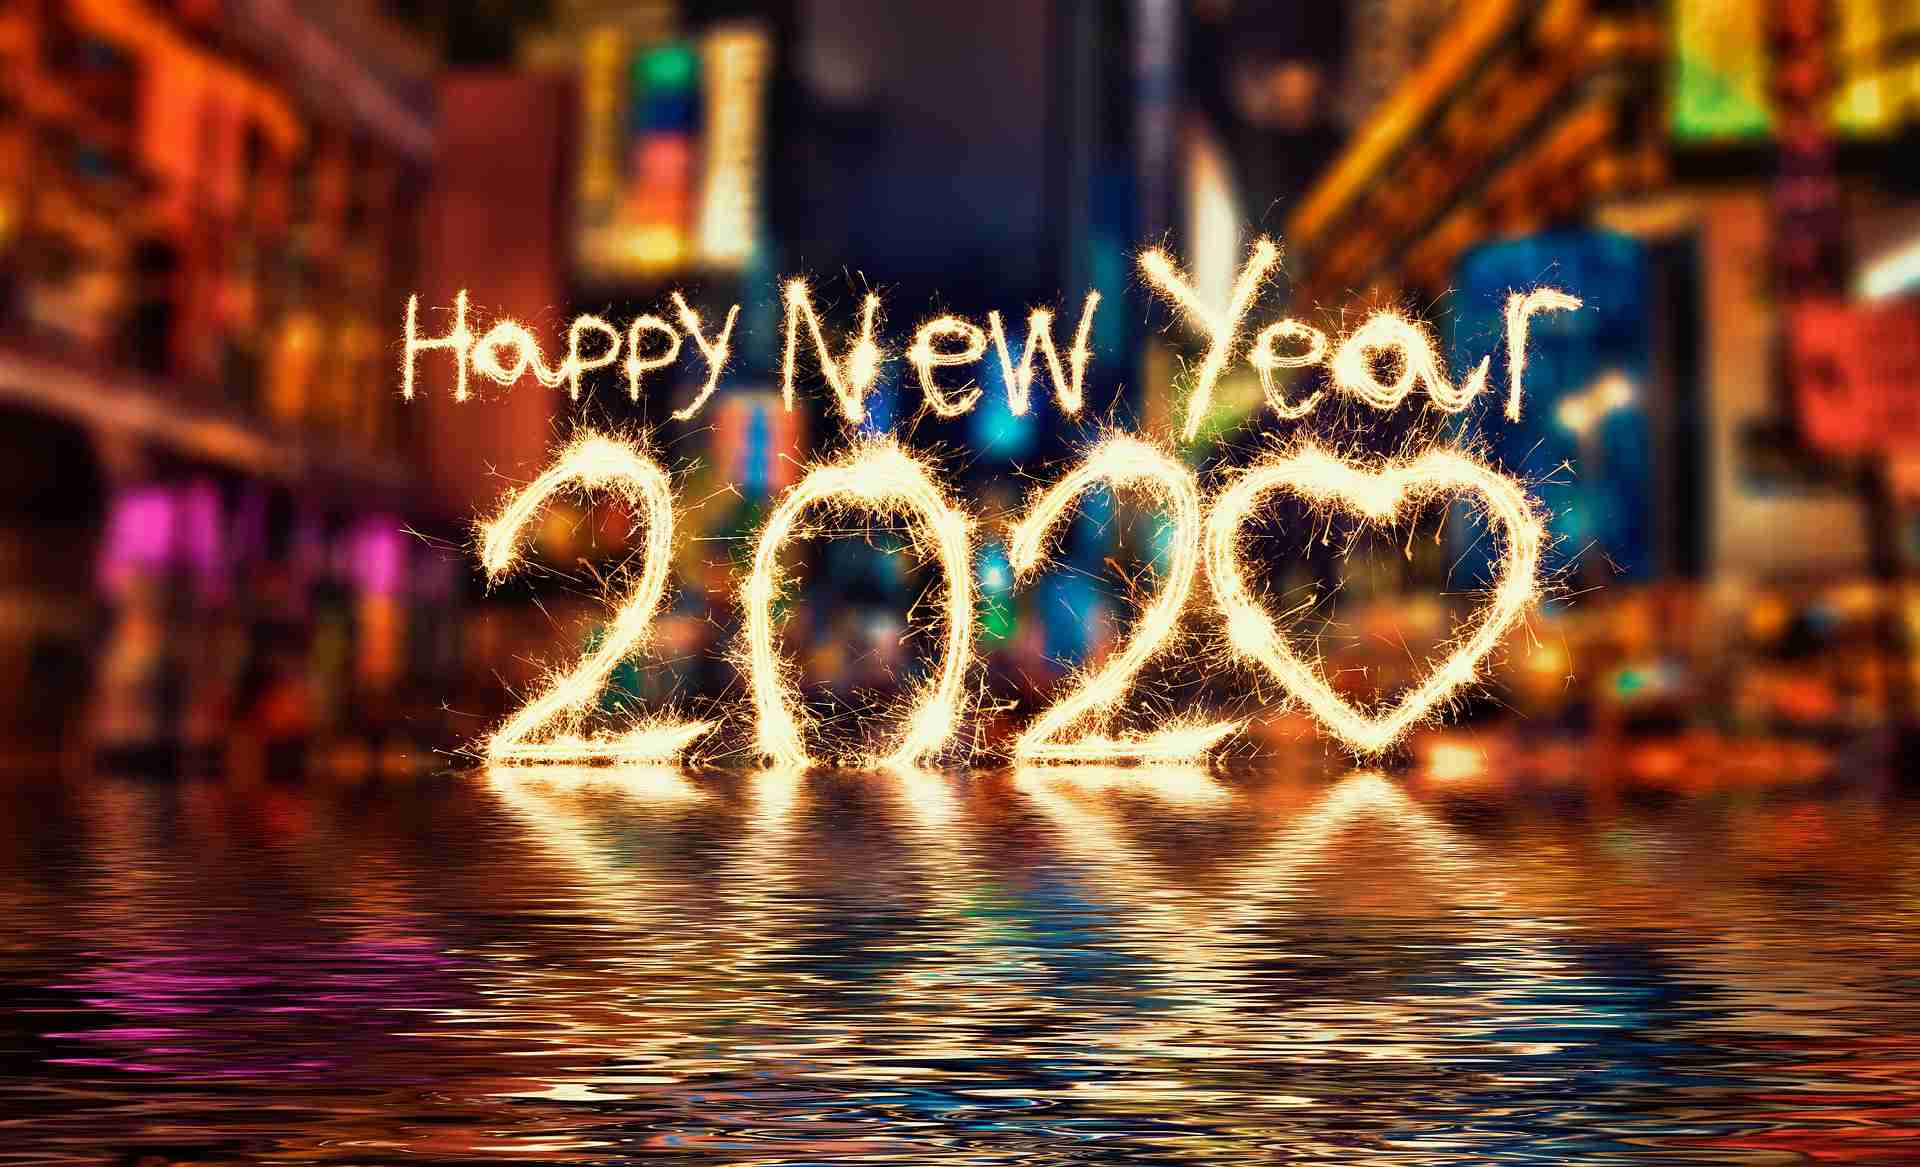 BESTHappy New Year 2020 HD Wallpaper Images Download 1920x1167